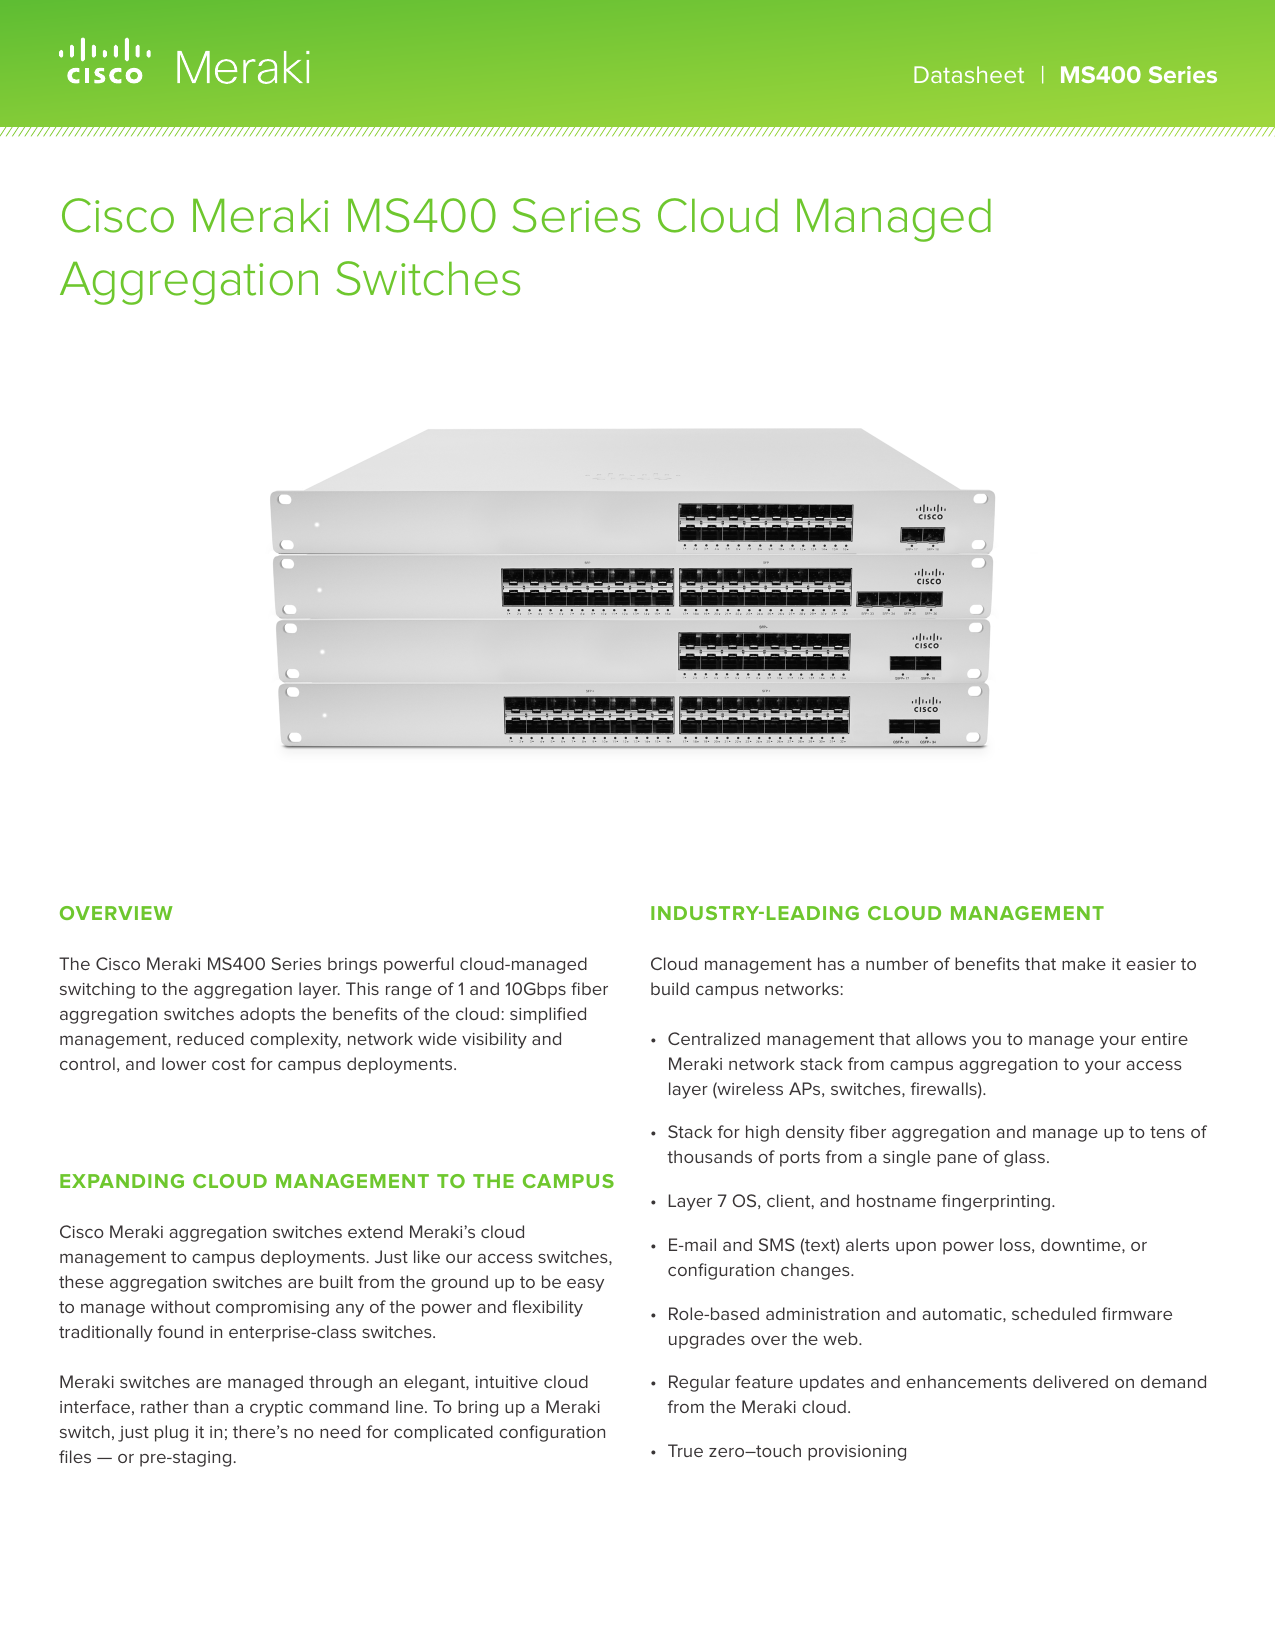 Cisco Meraki MS400 Series Cloud Managed Aggregation Switches